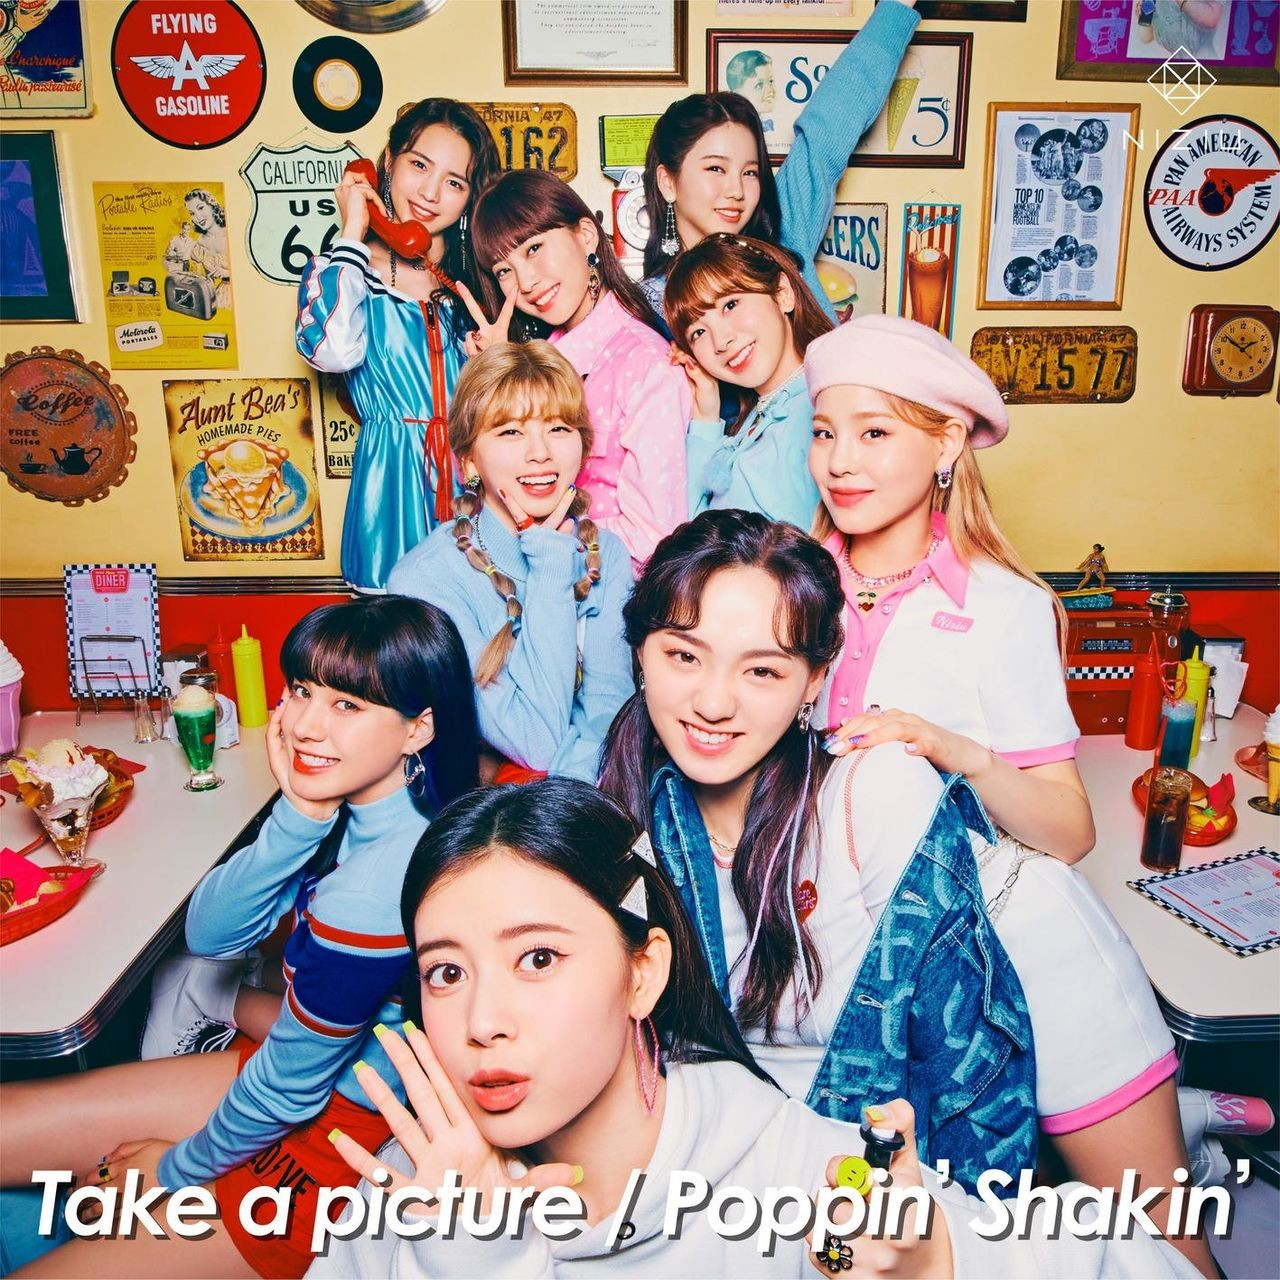 [Single] NiziU – Take a picture/Poppin' Shakin' [FLAC / 24bit Lossless / WEB] [2021.04.07]